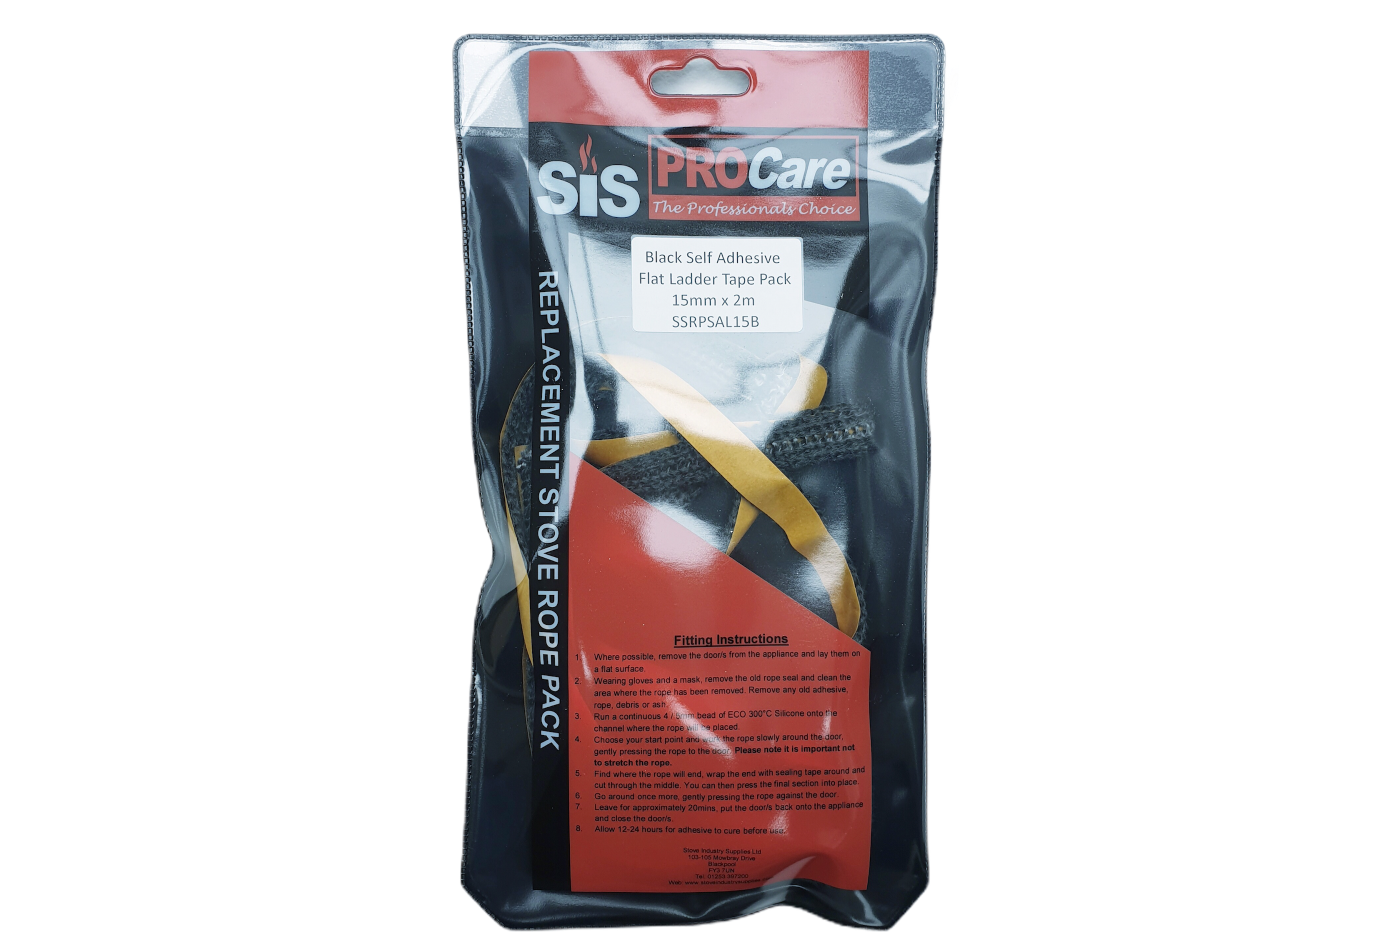 SiS Procare Black 15 milimetre x 2 metre Black Self Adhesive Backed Ladder Tape Pack